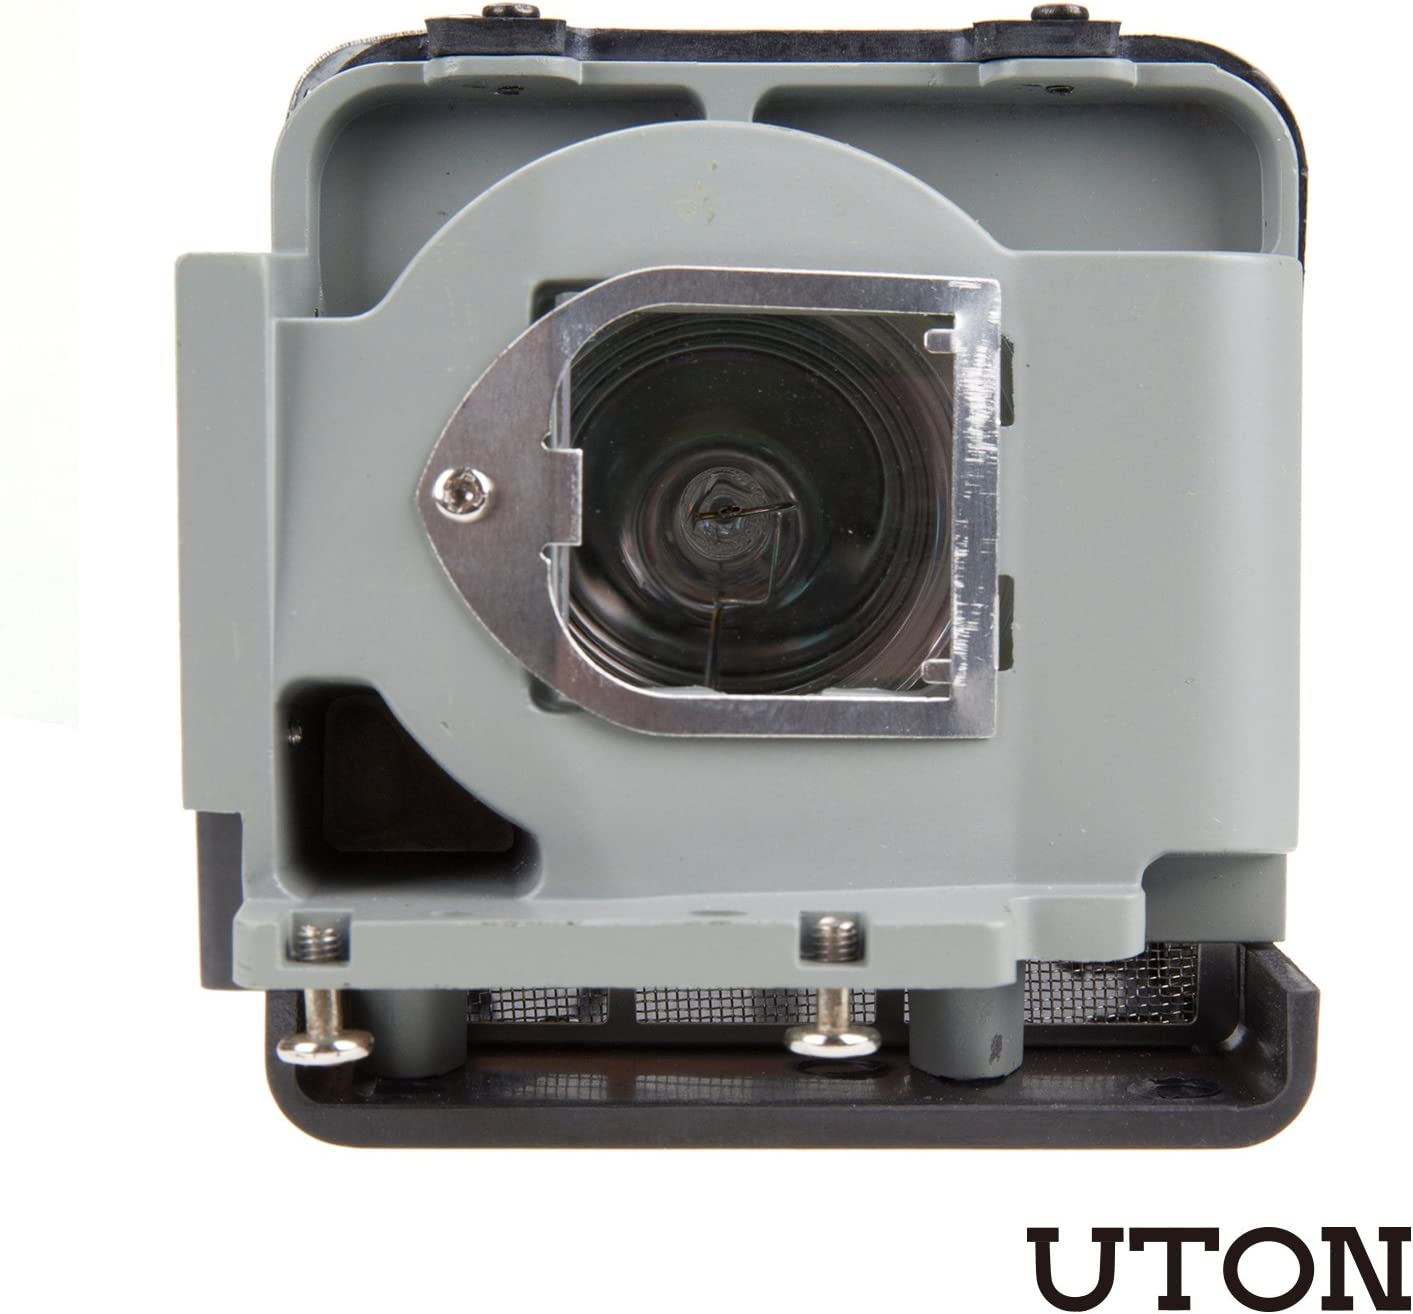 VLT-XD560LP Projector Lamp with Housing Replacement for Mitsubishi XD550U XD560U XD360-EST WD380-EST WD570 WD380U WD380U-EST WD385U-EST Projector (Uton)